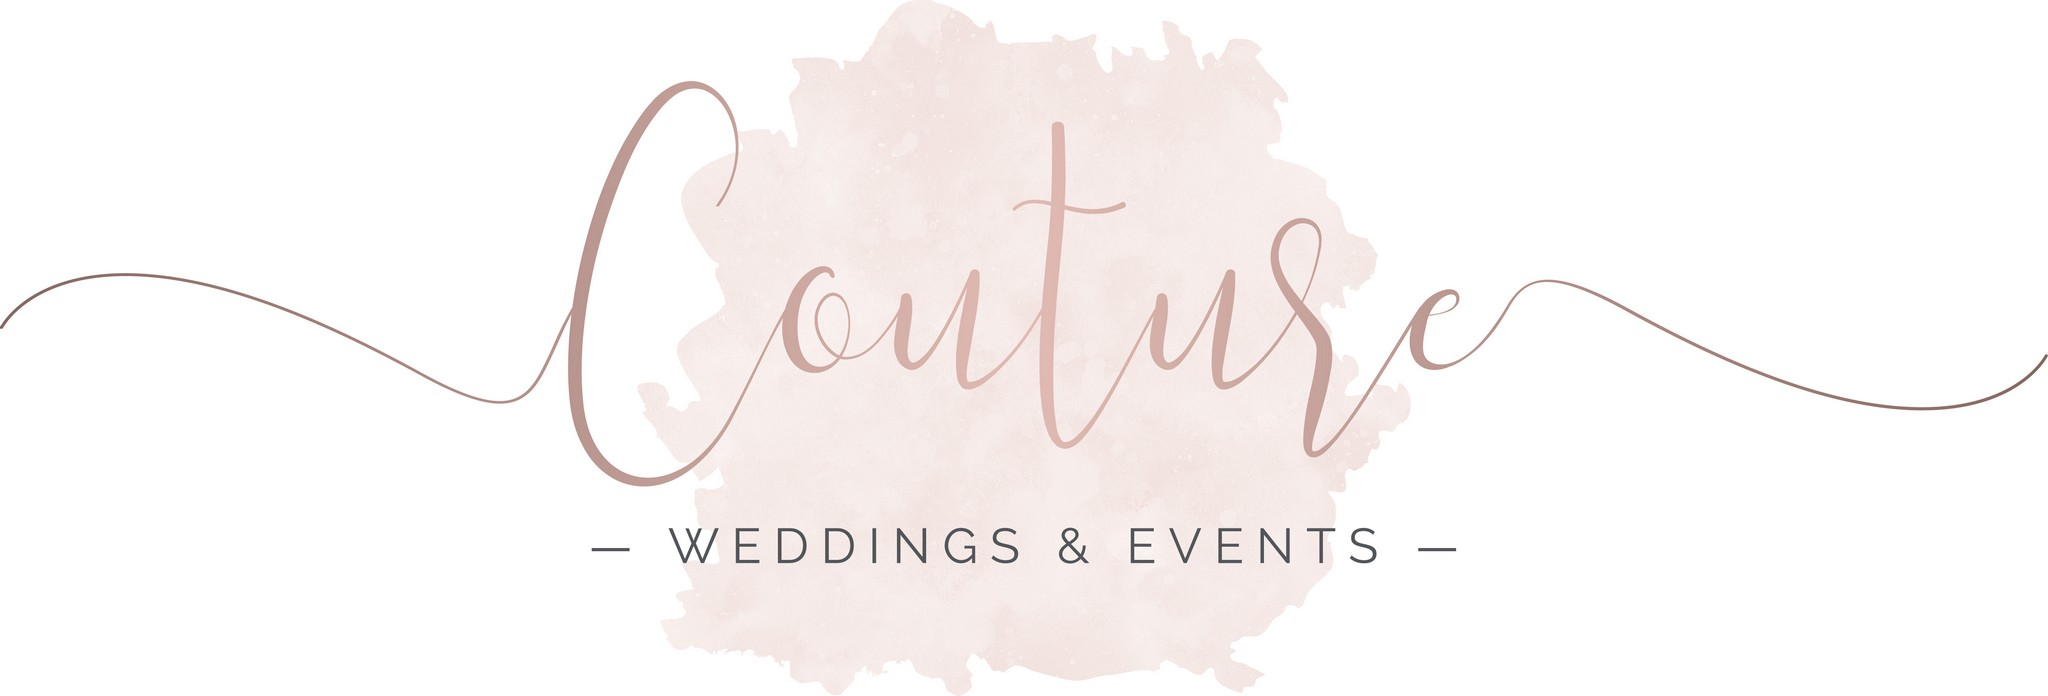 Couture Weddings & Events